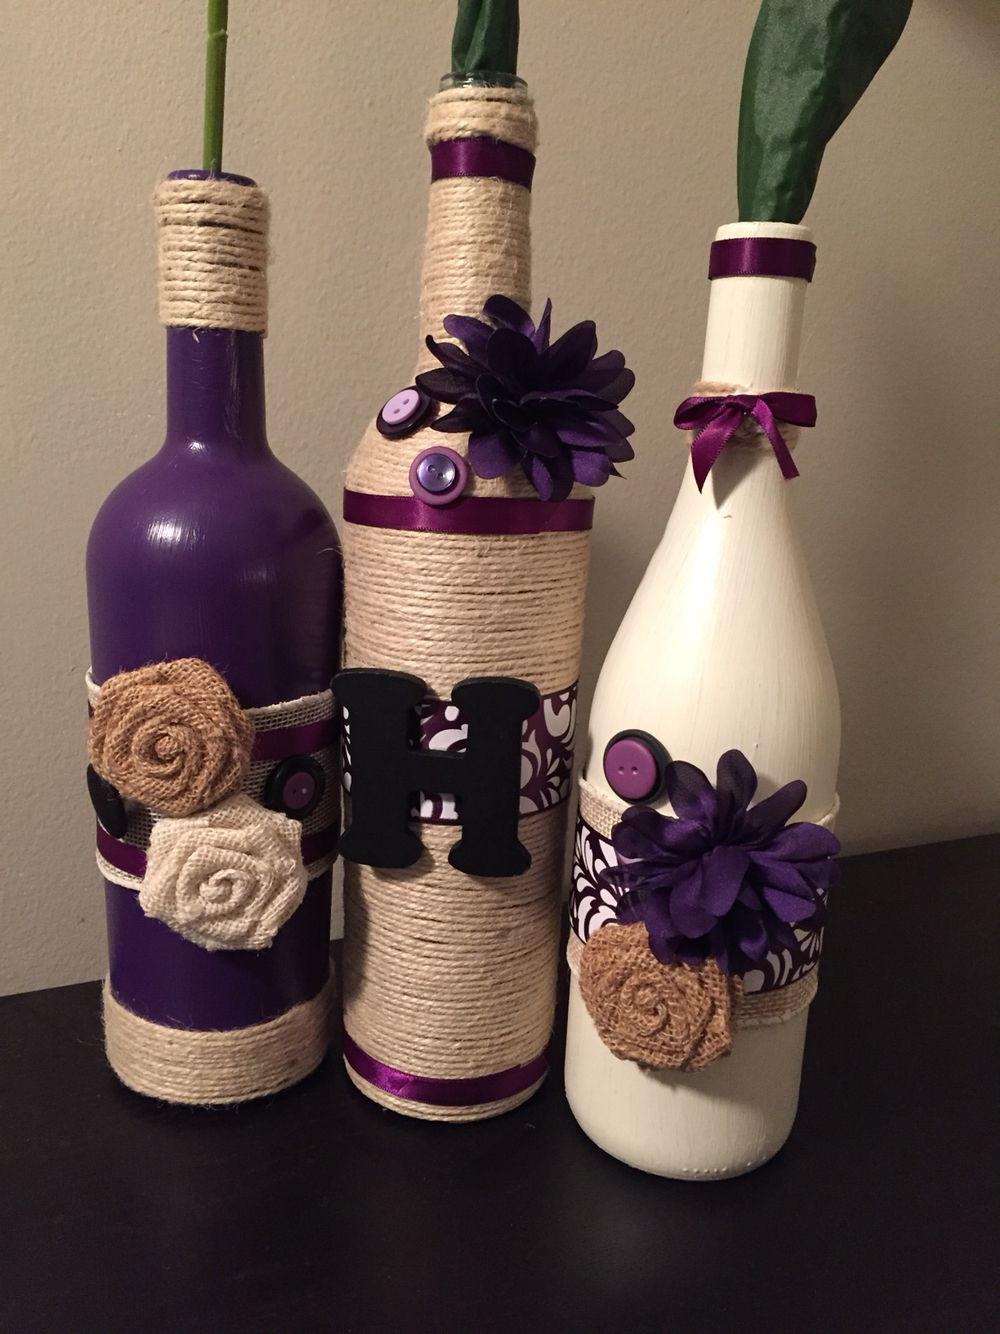 diy wine bottle crafts pinterest successes pinterest